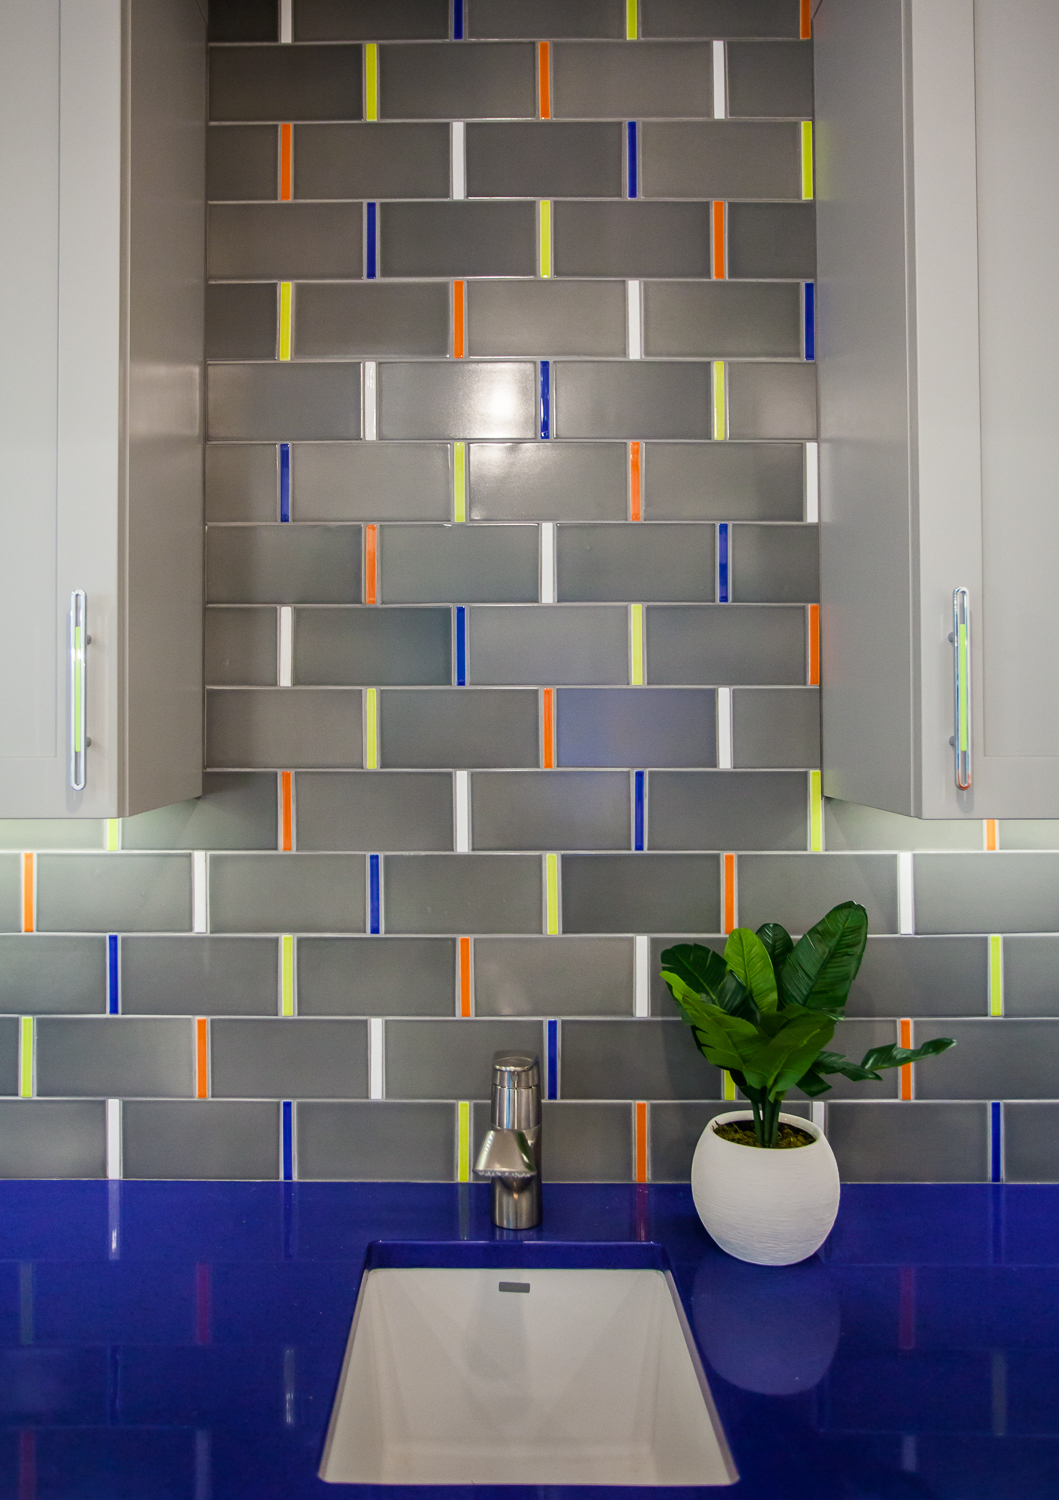 pratt-and-larson-backsplash-tile.jpg